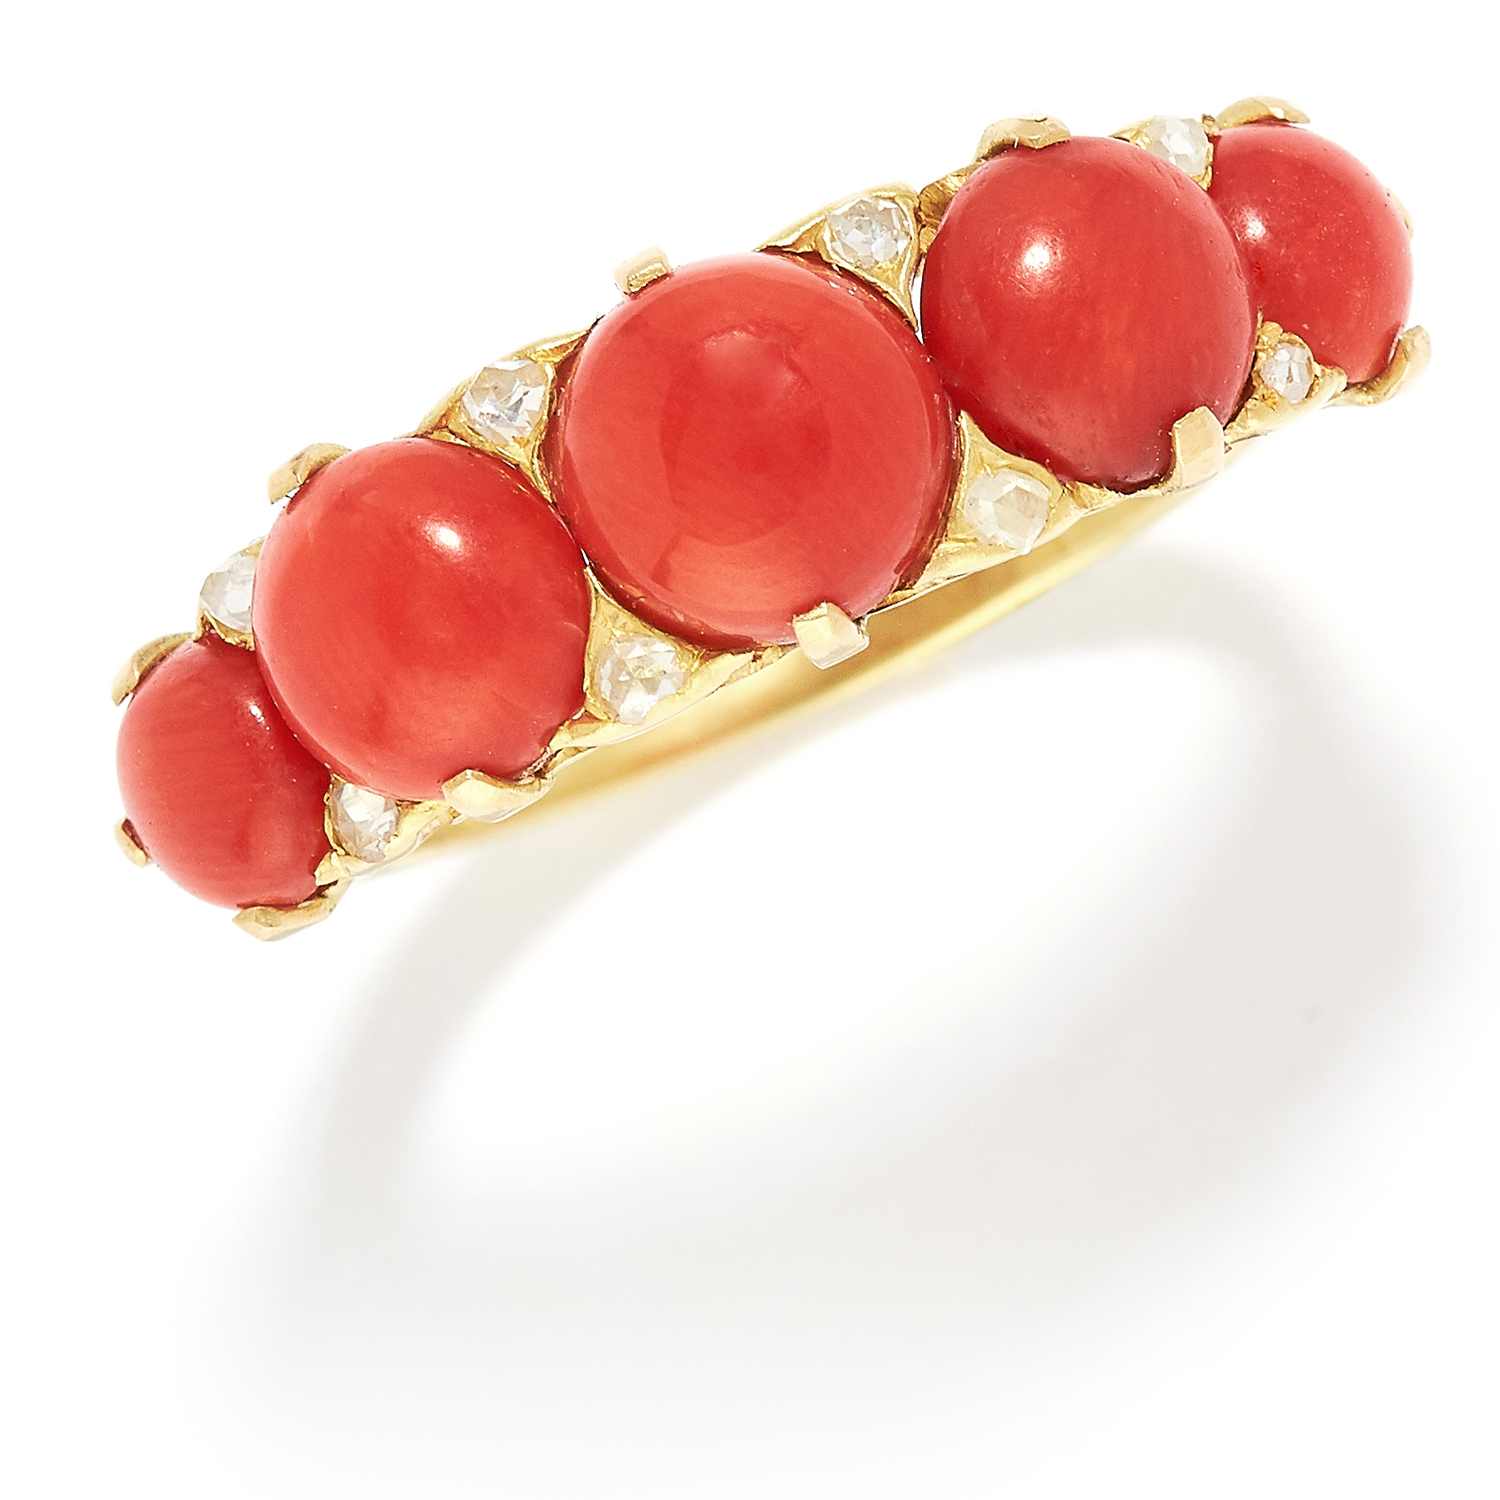 CORAL AND DIAMOND FIVE STONE RING in yellow gold, comprising of five cabochon coral with rose cut